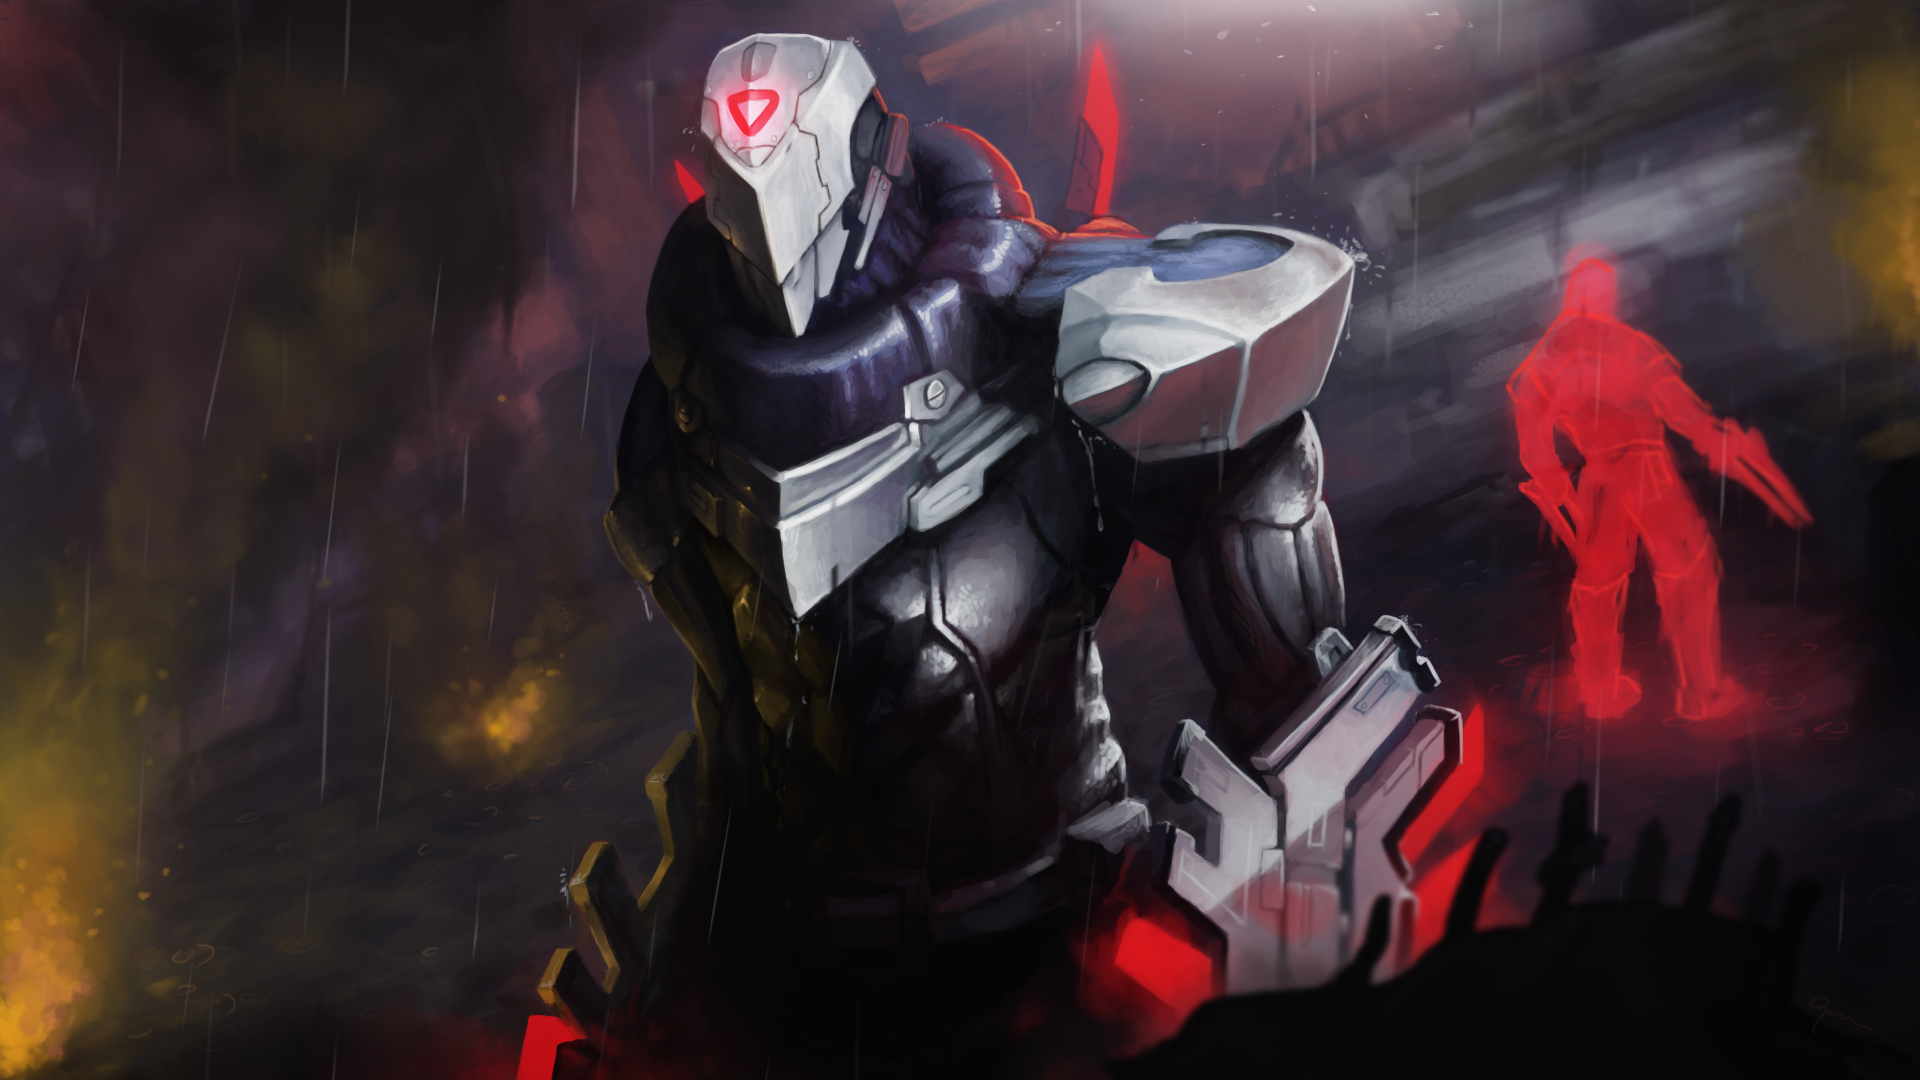 Project Zed Lol League Of Legends League Of Legends Characters League Of Legends